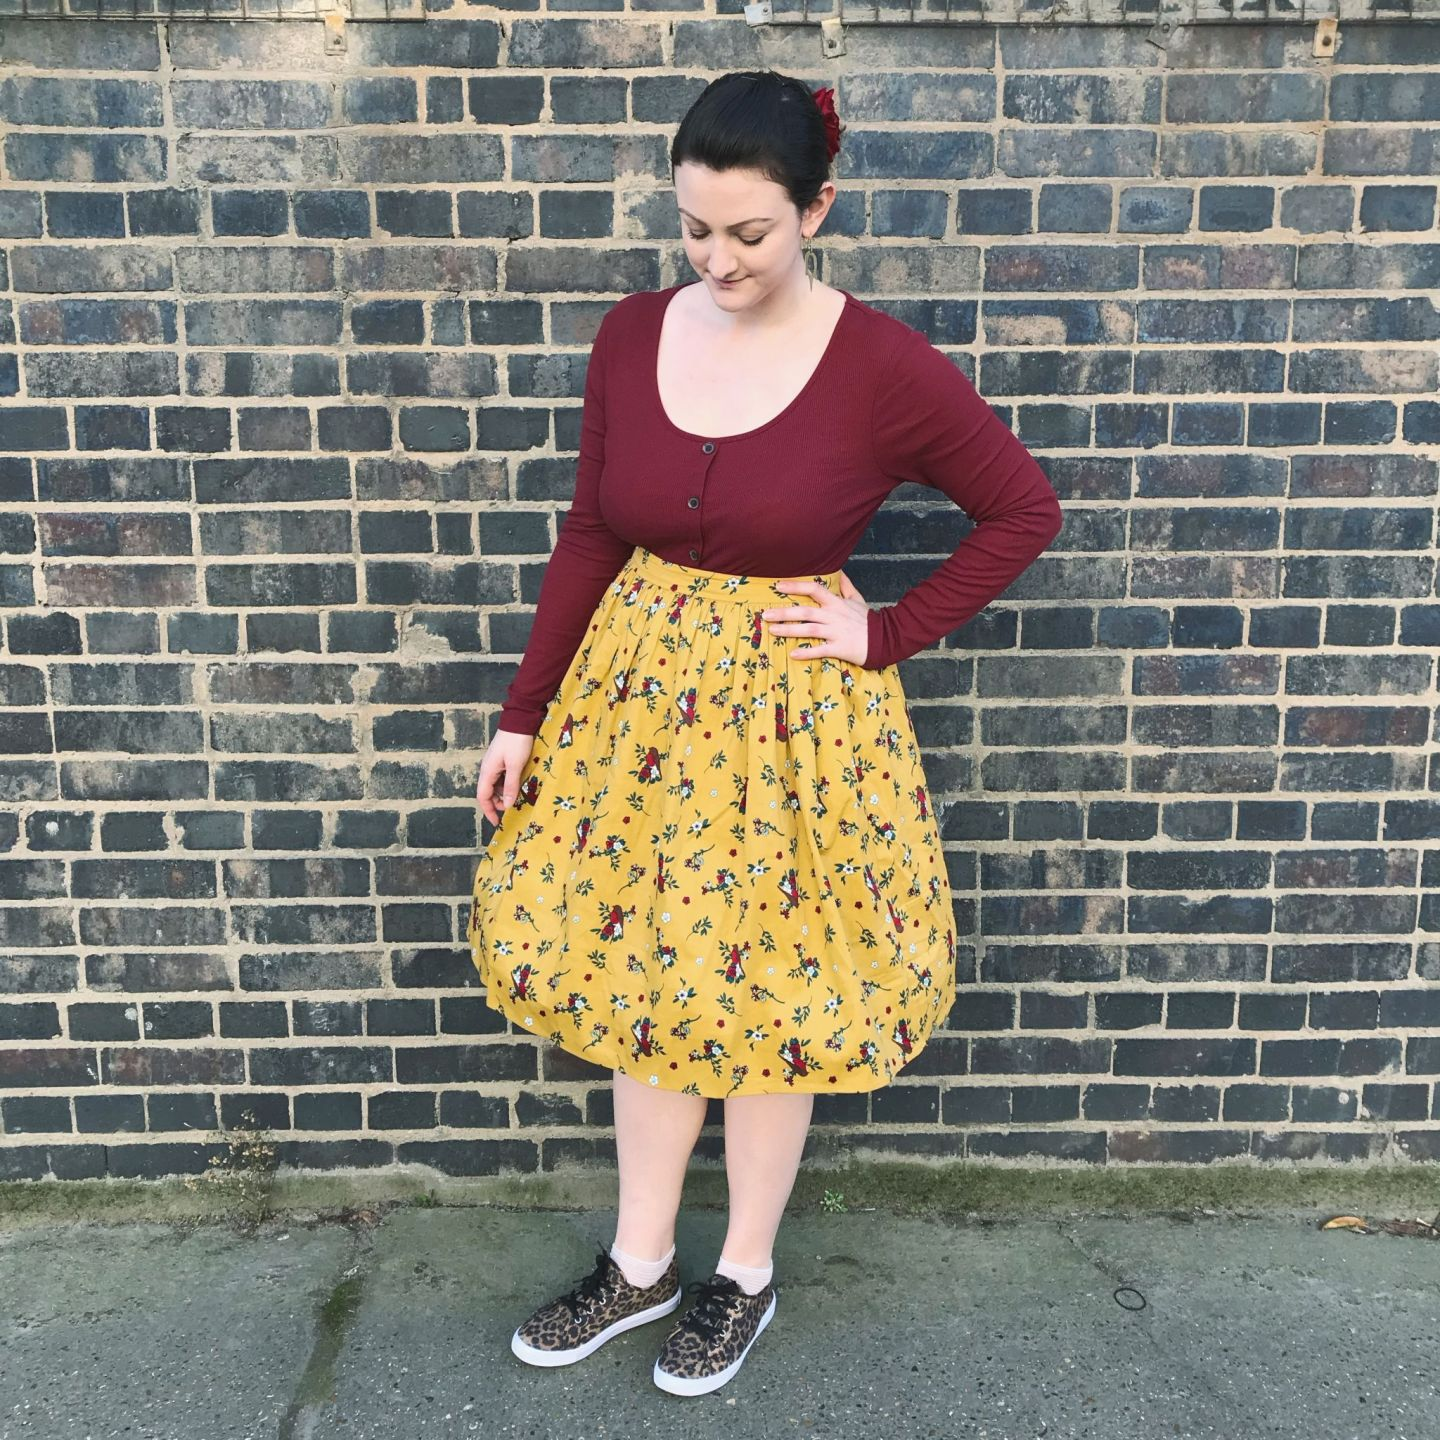 collectif robin print skirt with New Look top and Asos shoes